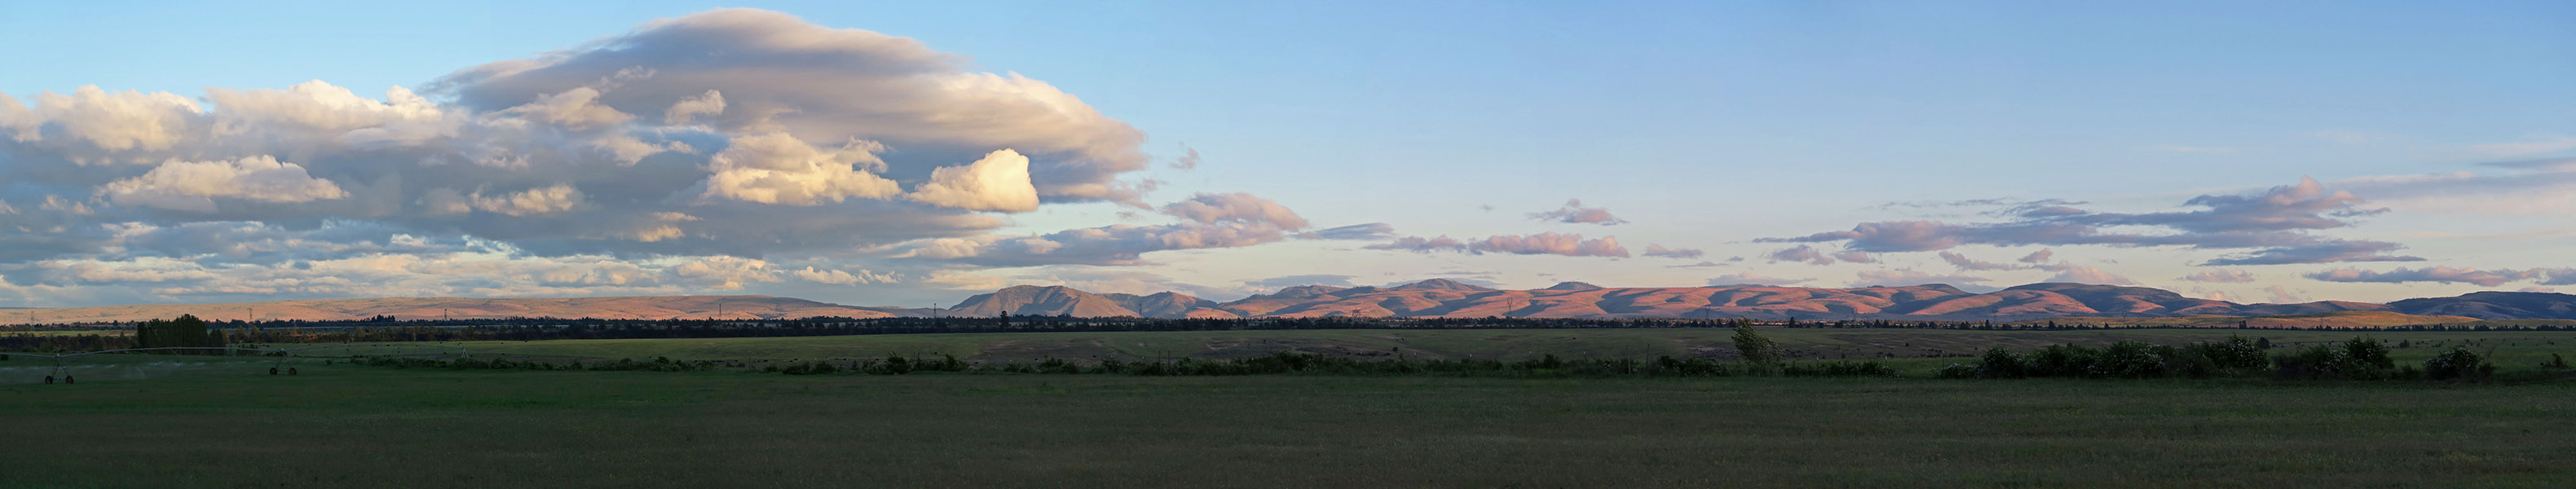 sunset clouds panorama [Wamic Market Road, Wasco County, Oregon]